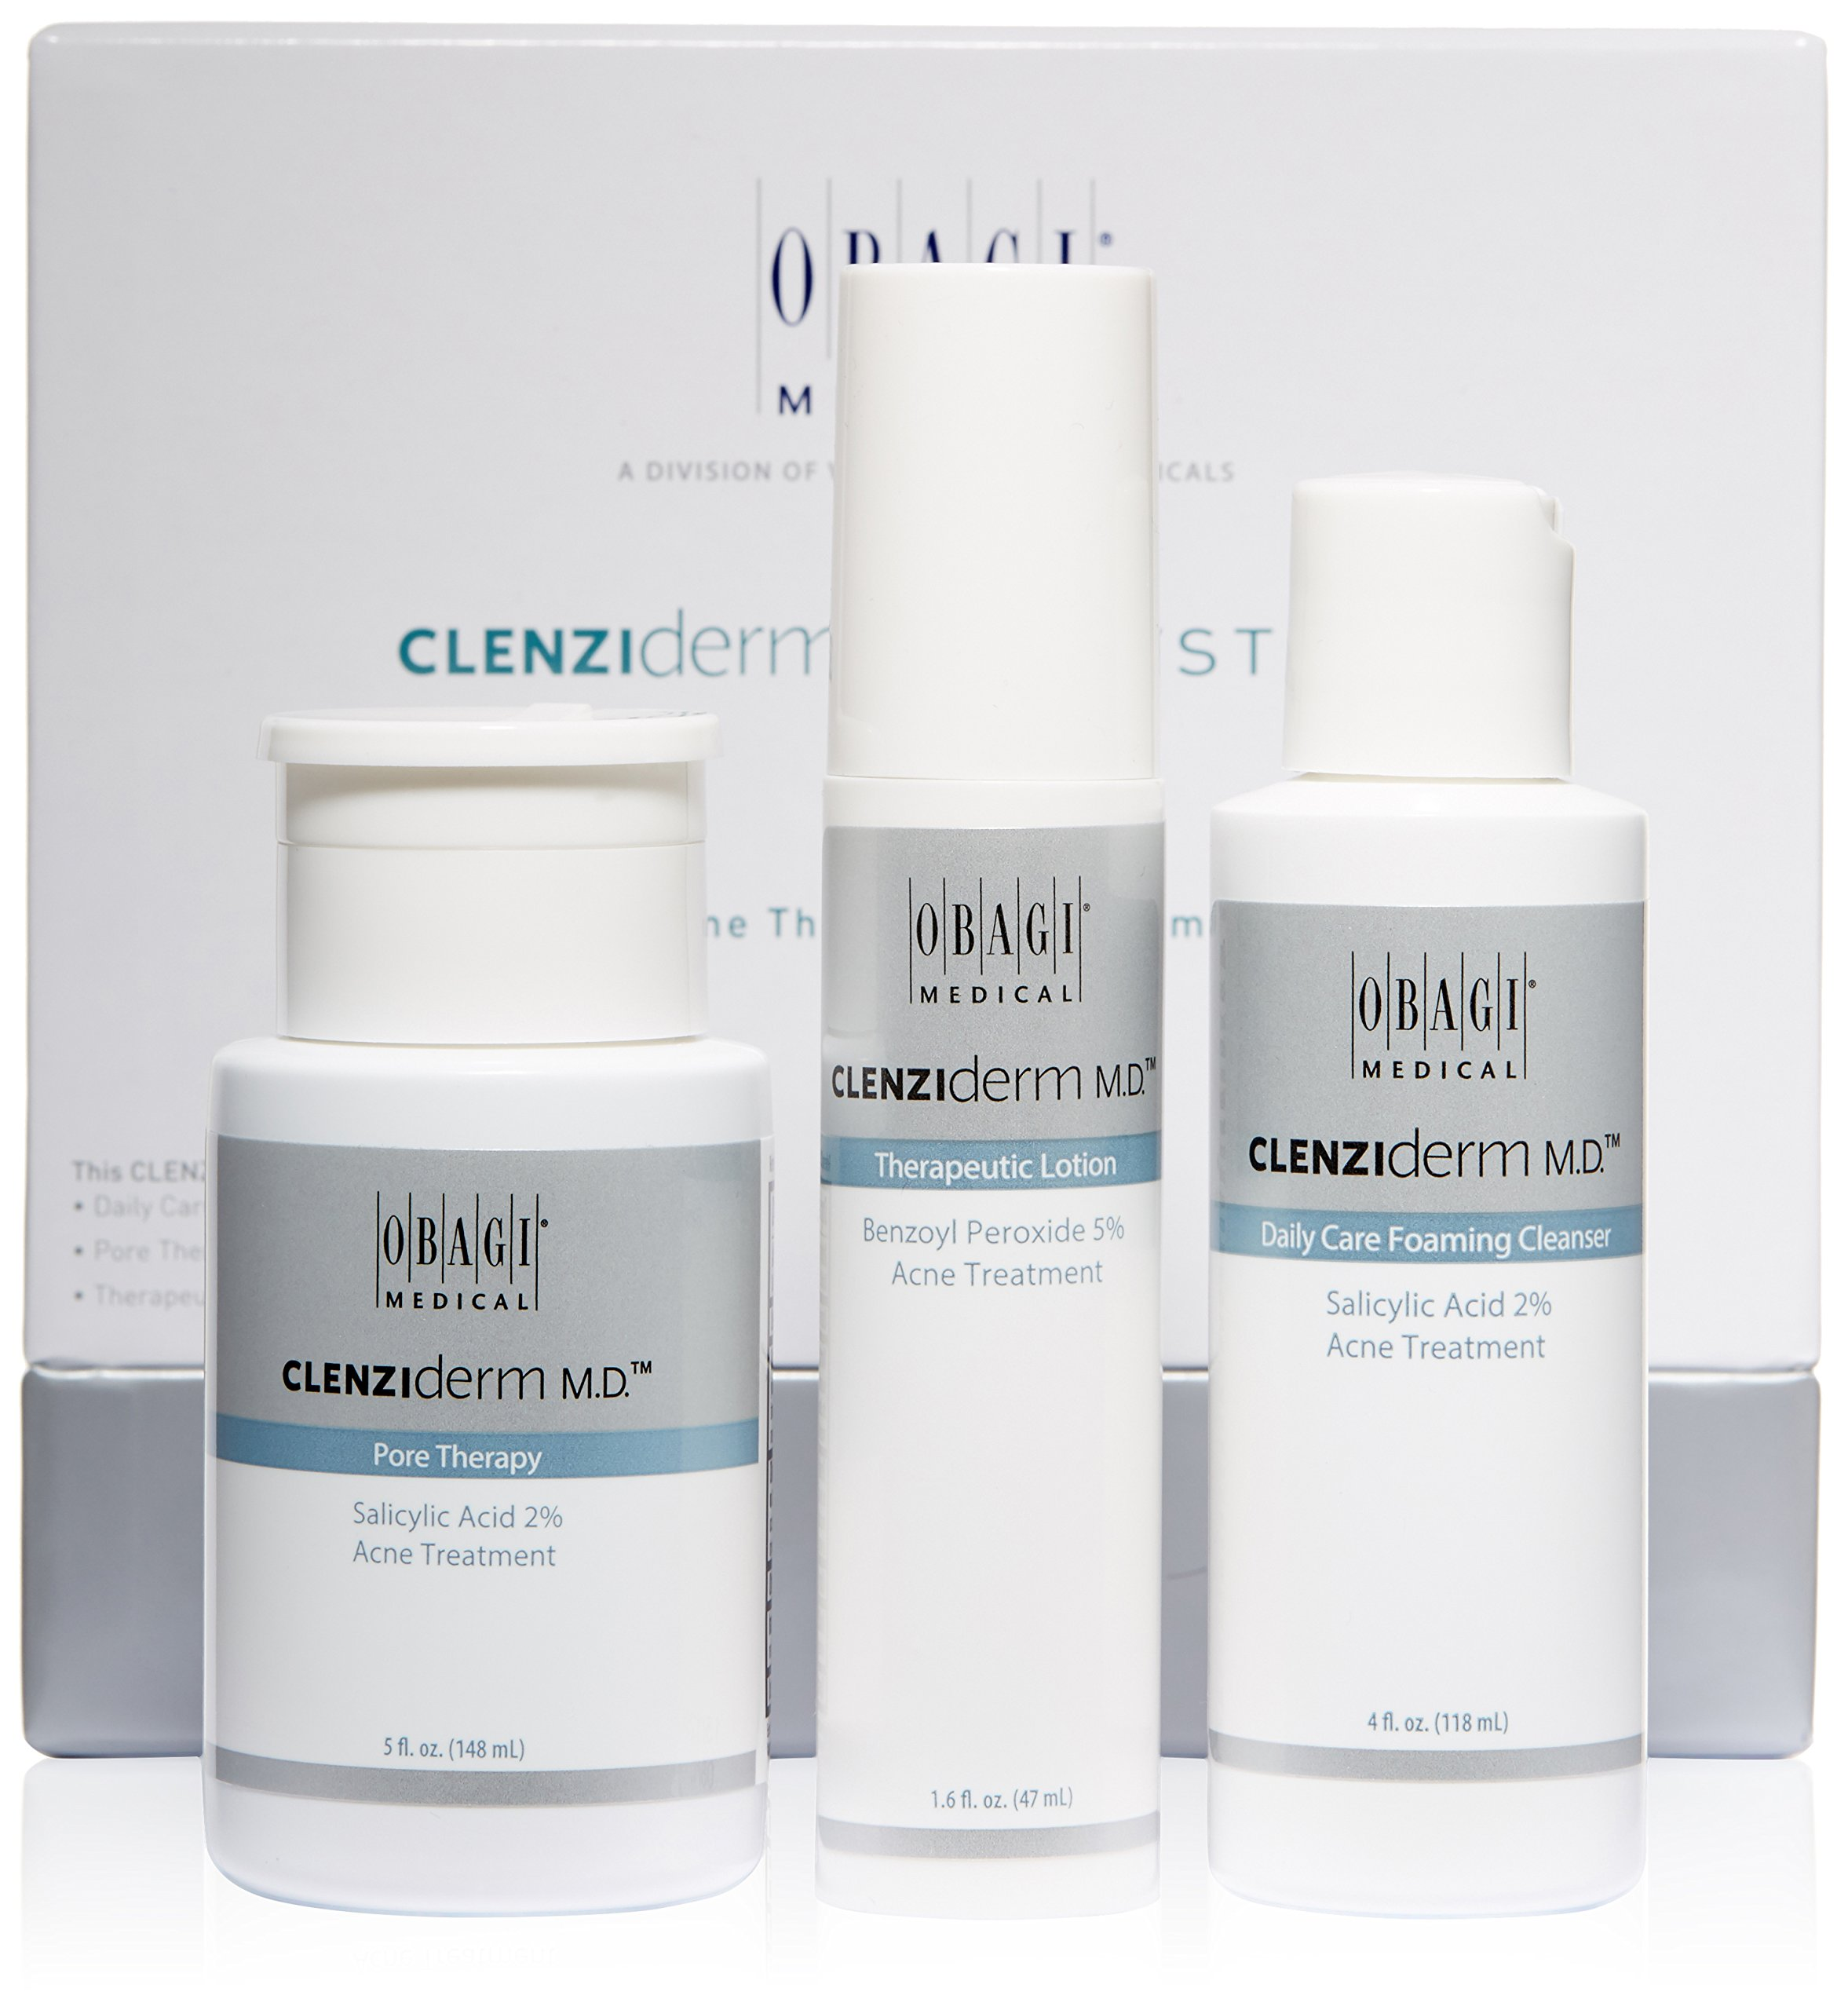 Obagi CLENZIderm M.D. System by Obagi Medical